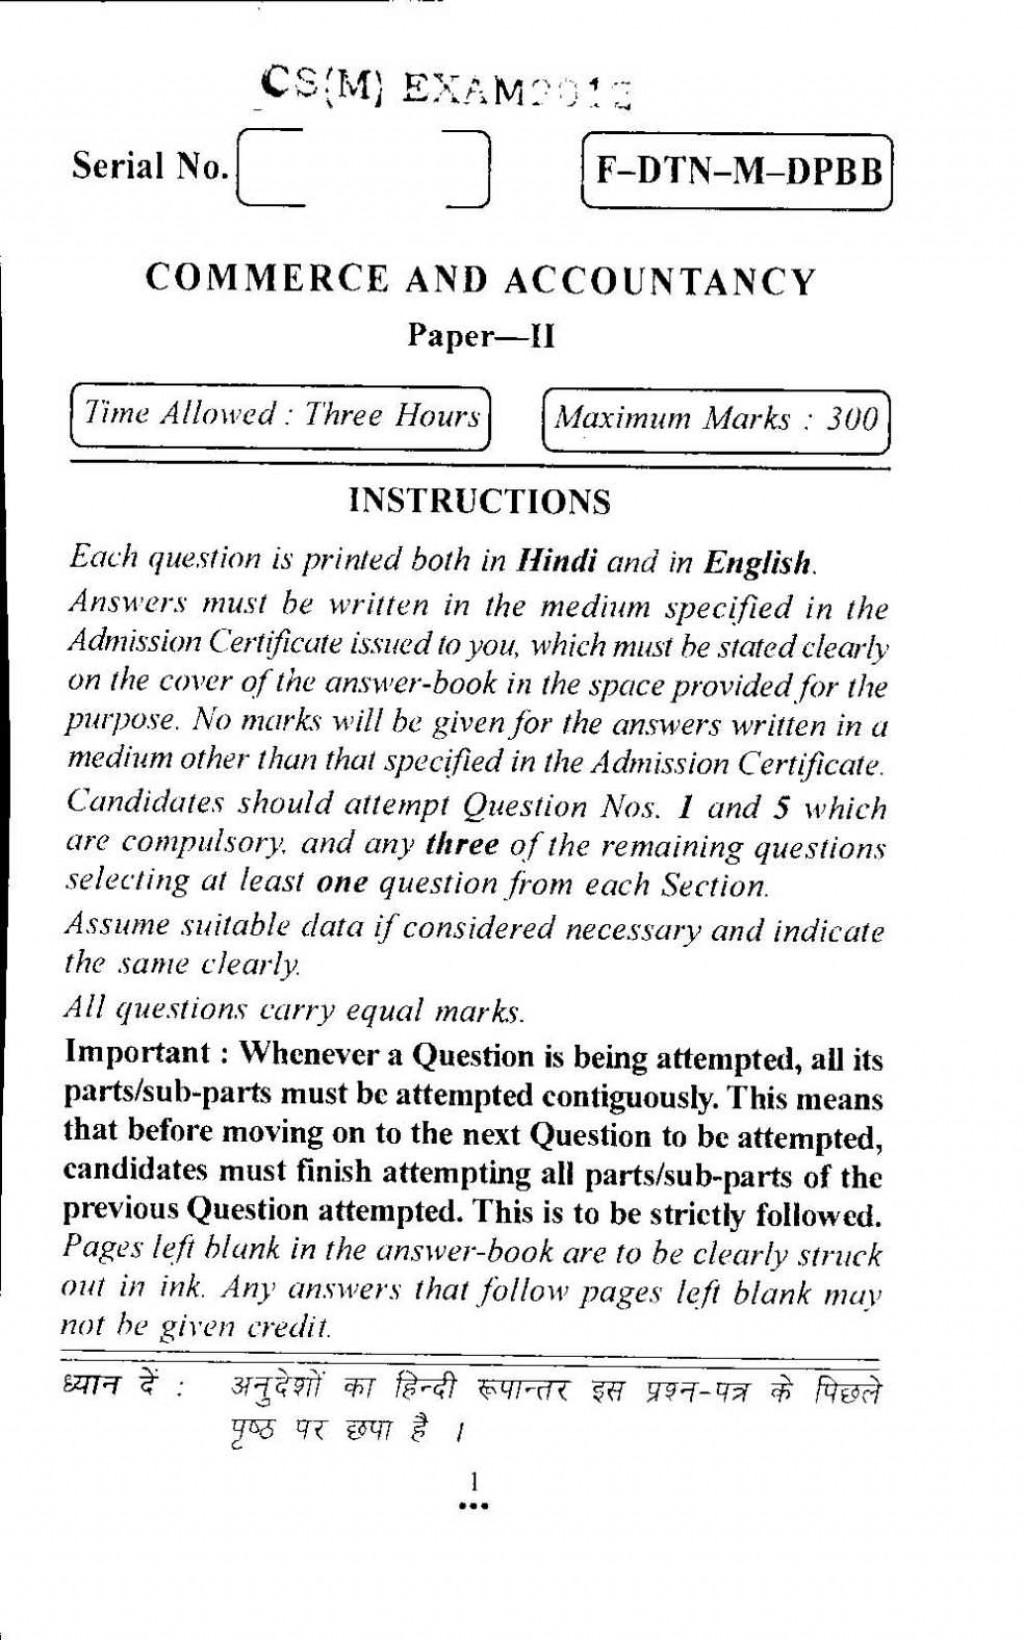 009 Essay Example Civil Services Examination Commerce And Accountancy Paper Ii Previous Years Que Racism Fantastic Argumentative Topics Examples In Sports Large